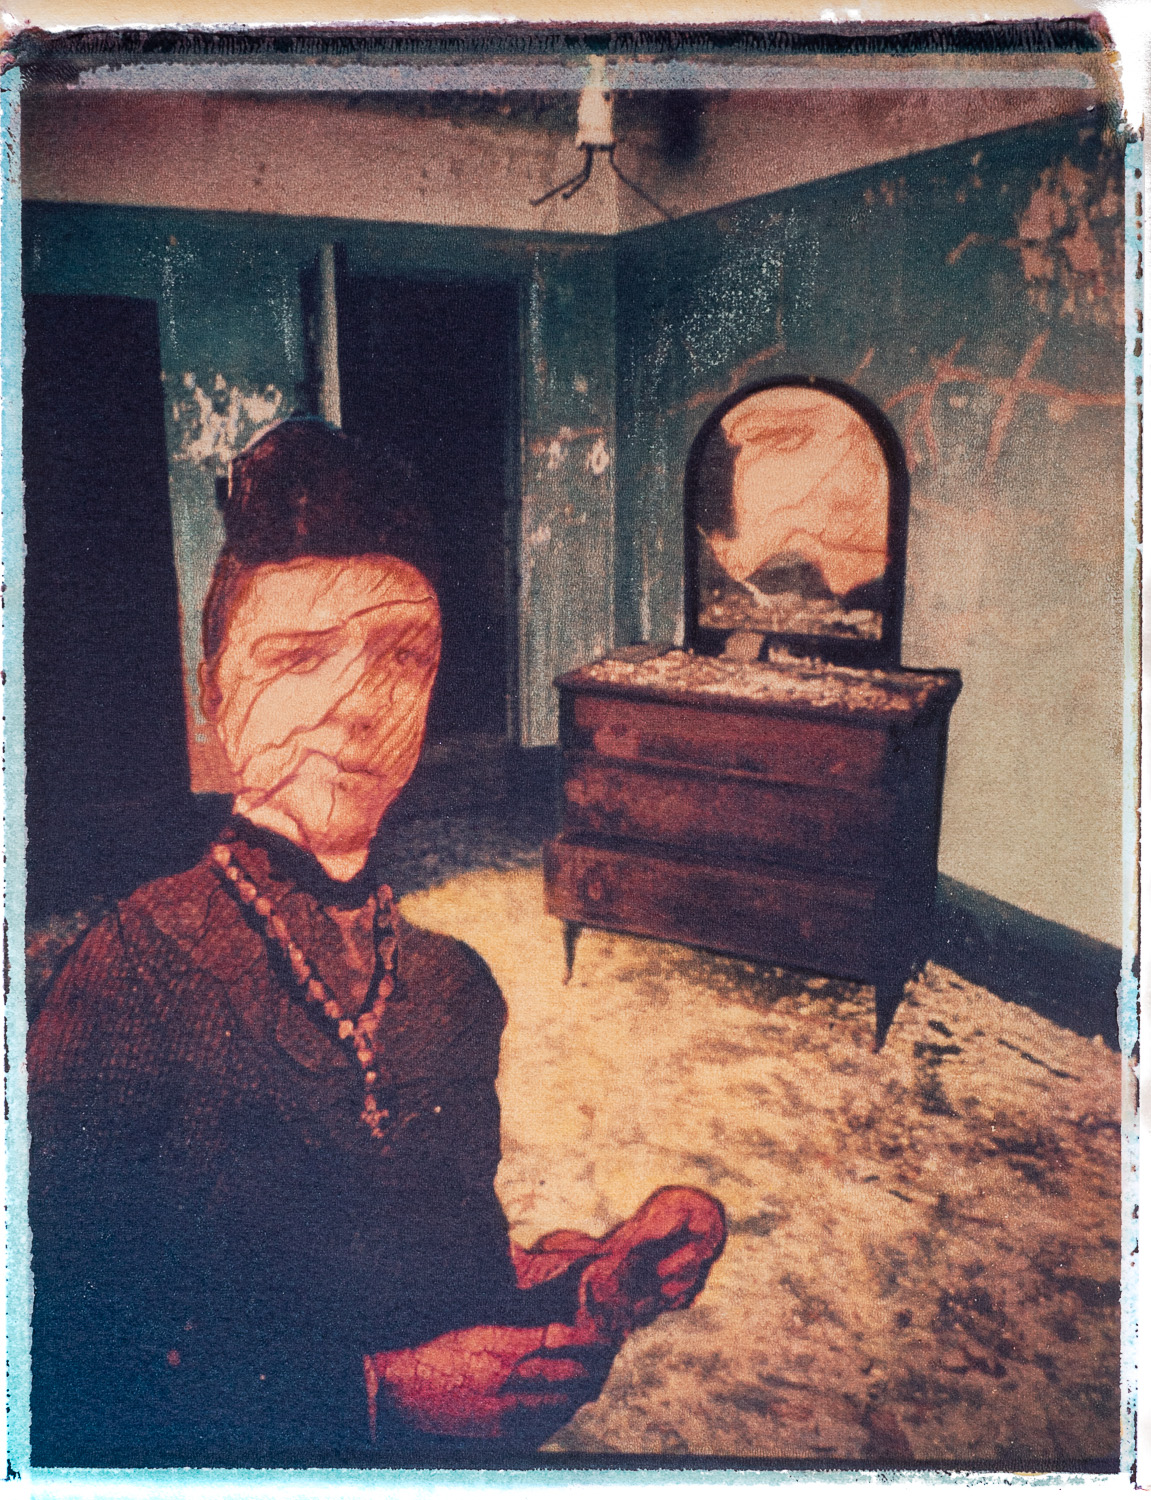 Distorted face of woman in a bedroom